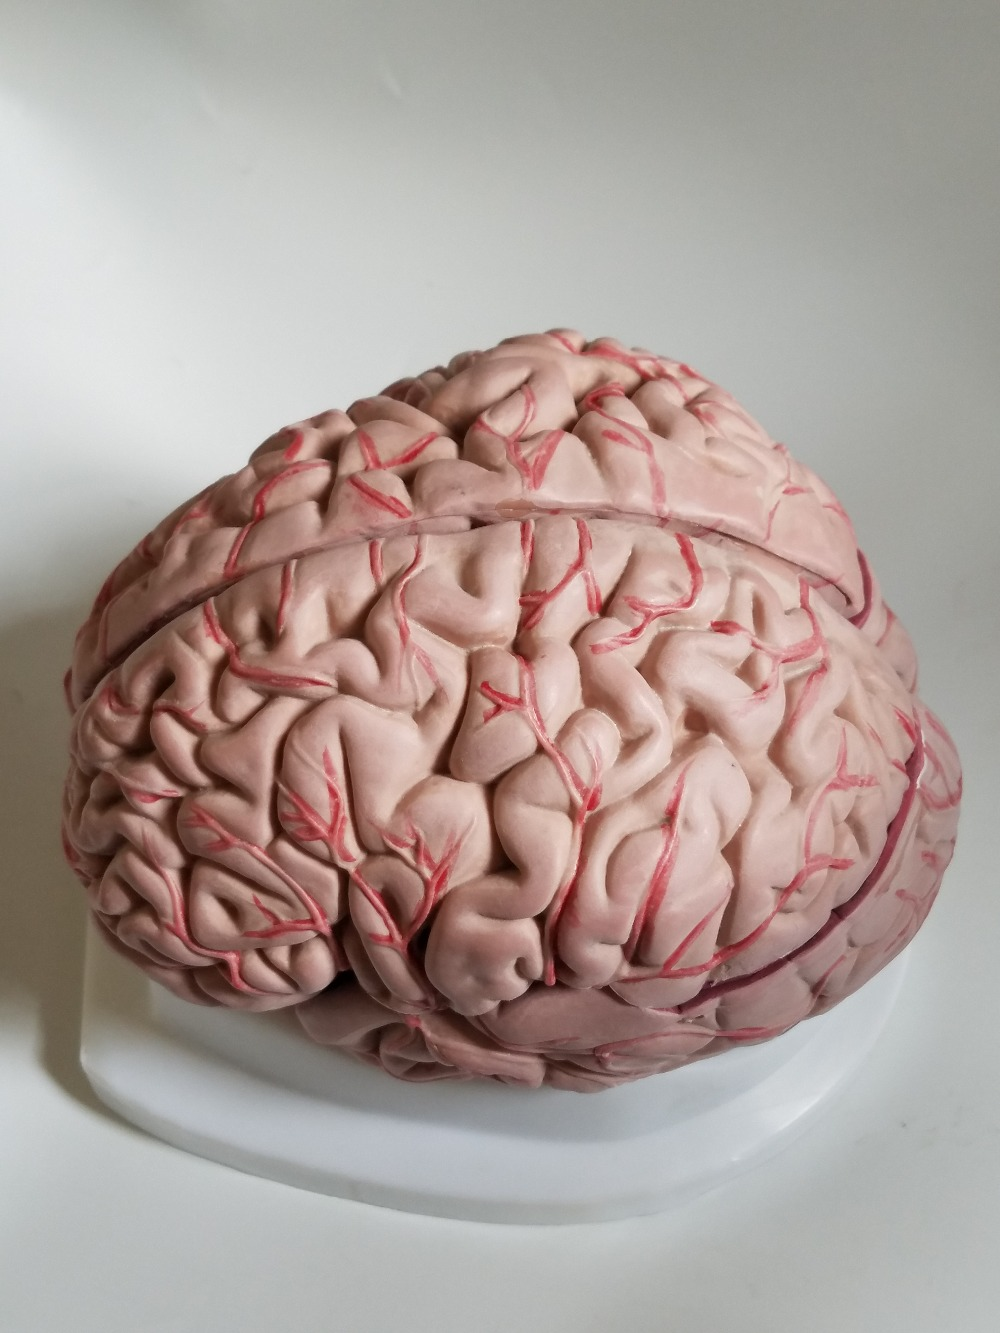 Human Brain Model Cerebrovascular Model 8 Parts Brain Anatomy Model Medical Science Teaching Model Educational Supplies shunzaor dog ear lesion anatomical model animal model animal veterinary science medical teaching aids medical research model